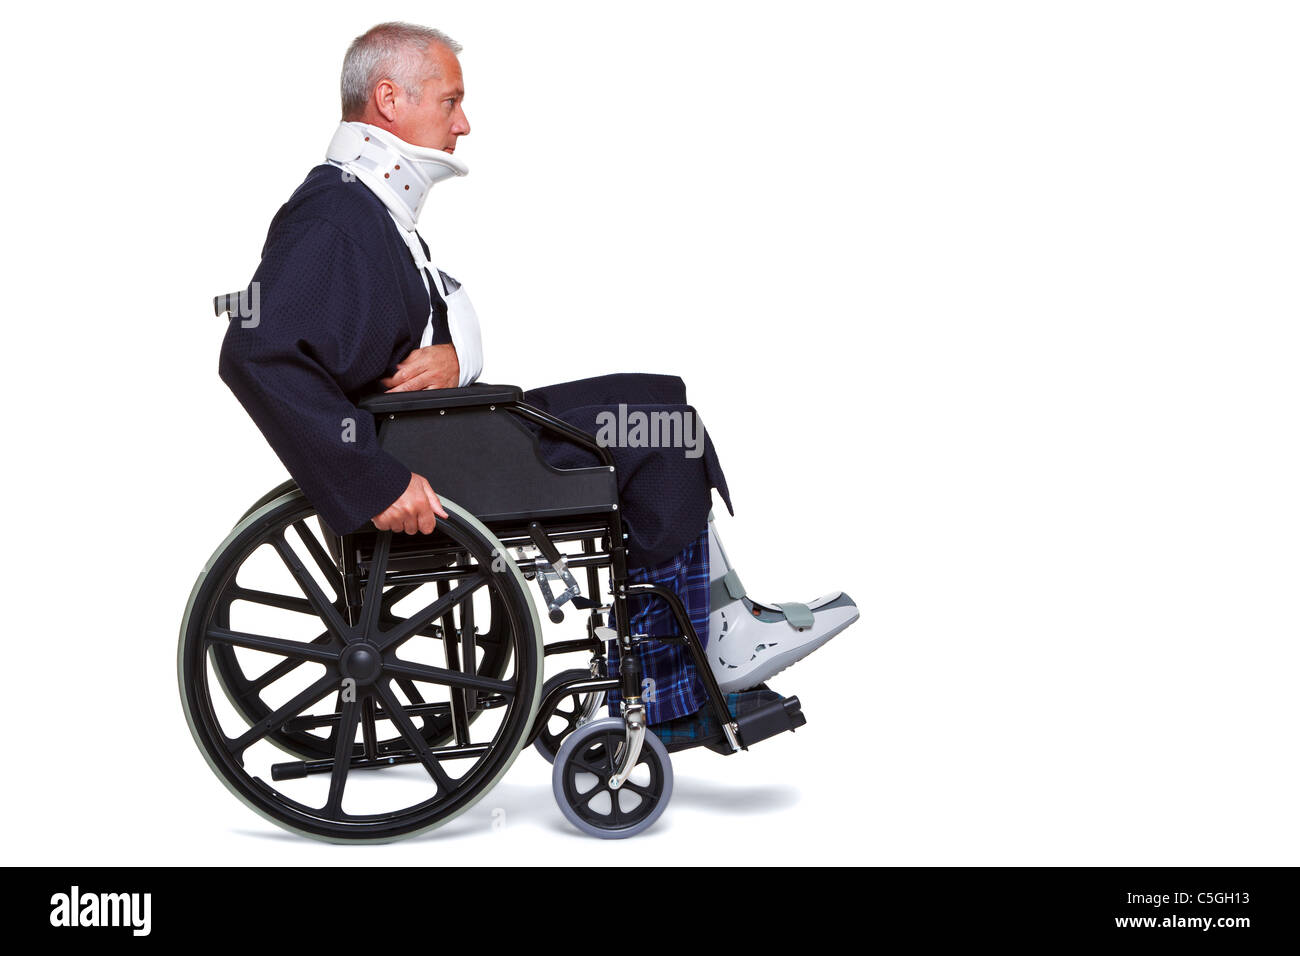 Photo of an injured man pushing himself along in his wheelchair, isolated on a white background. - Stock Image